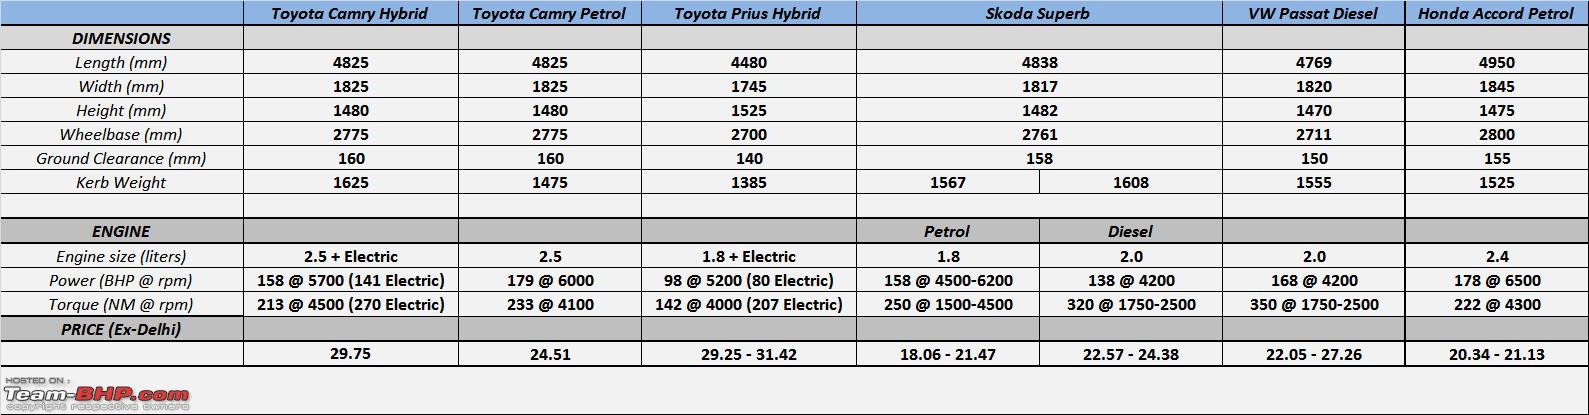 Toyota Camry Hybrid : Official Review Toyota Camry Hybrid Specifications.png